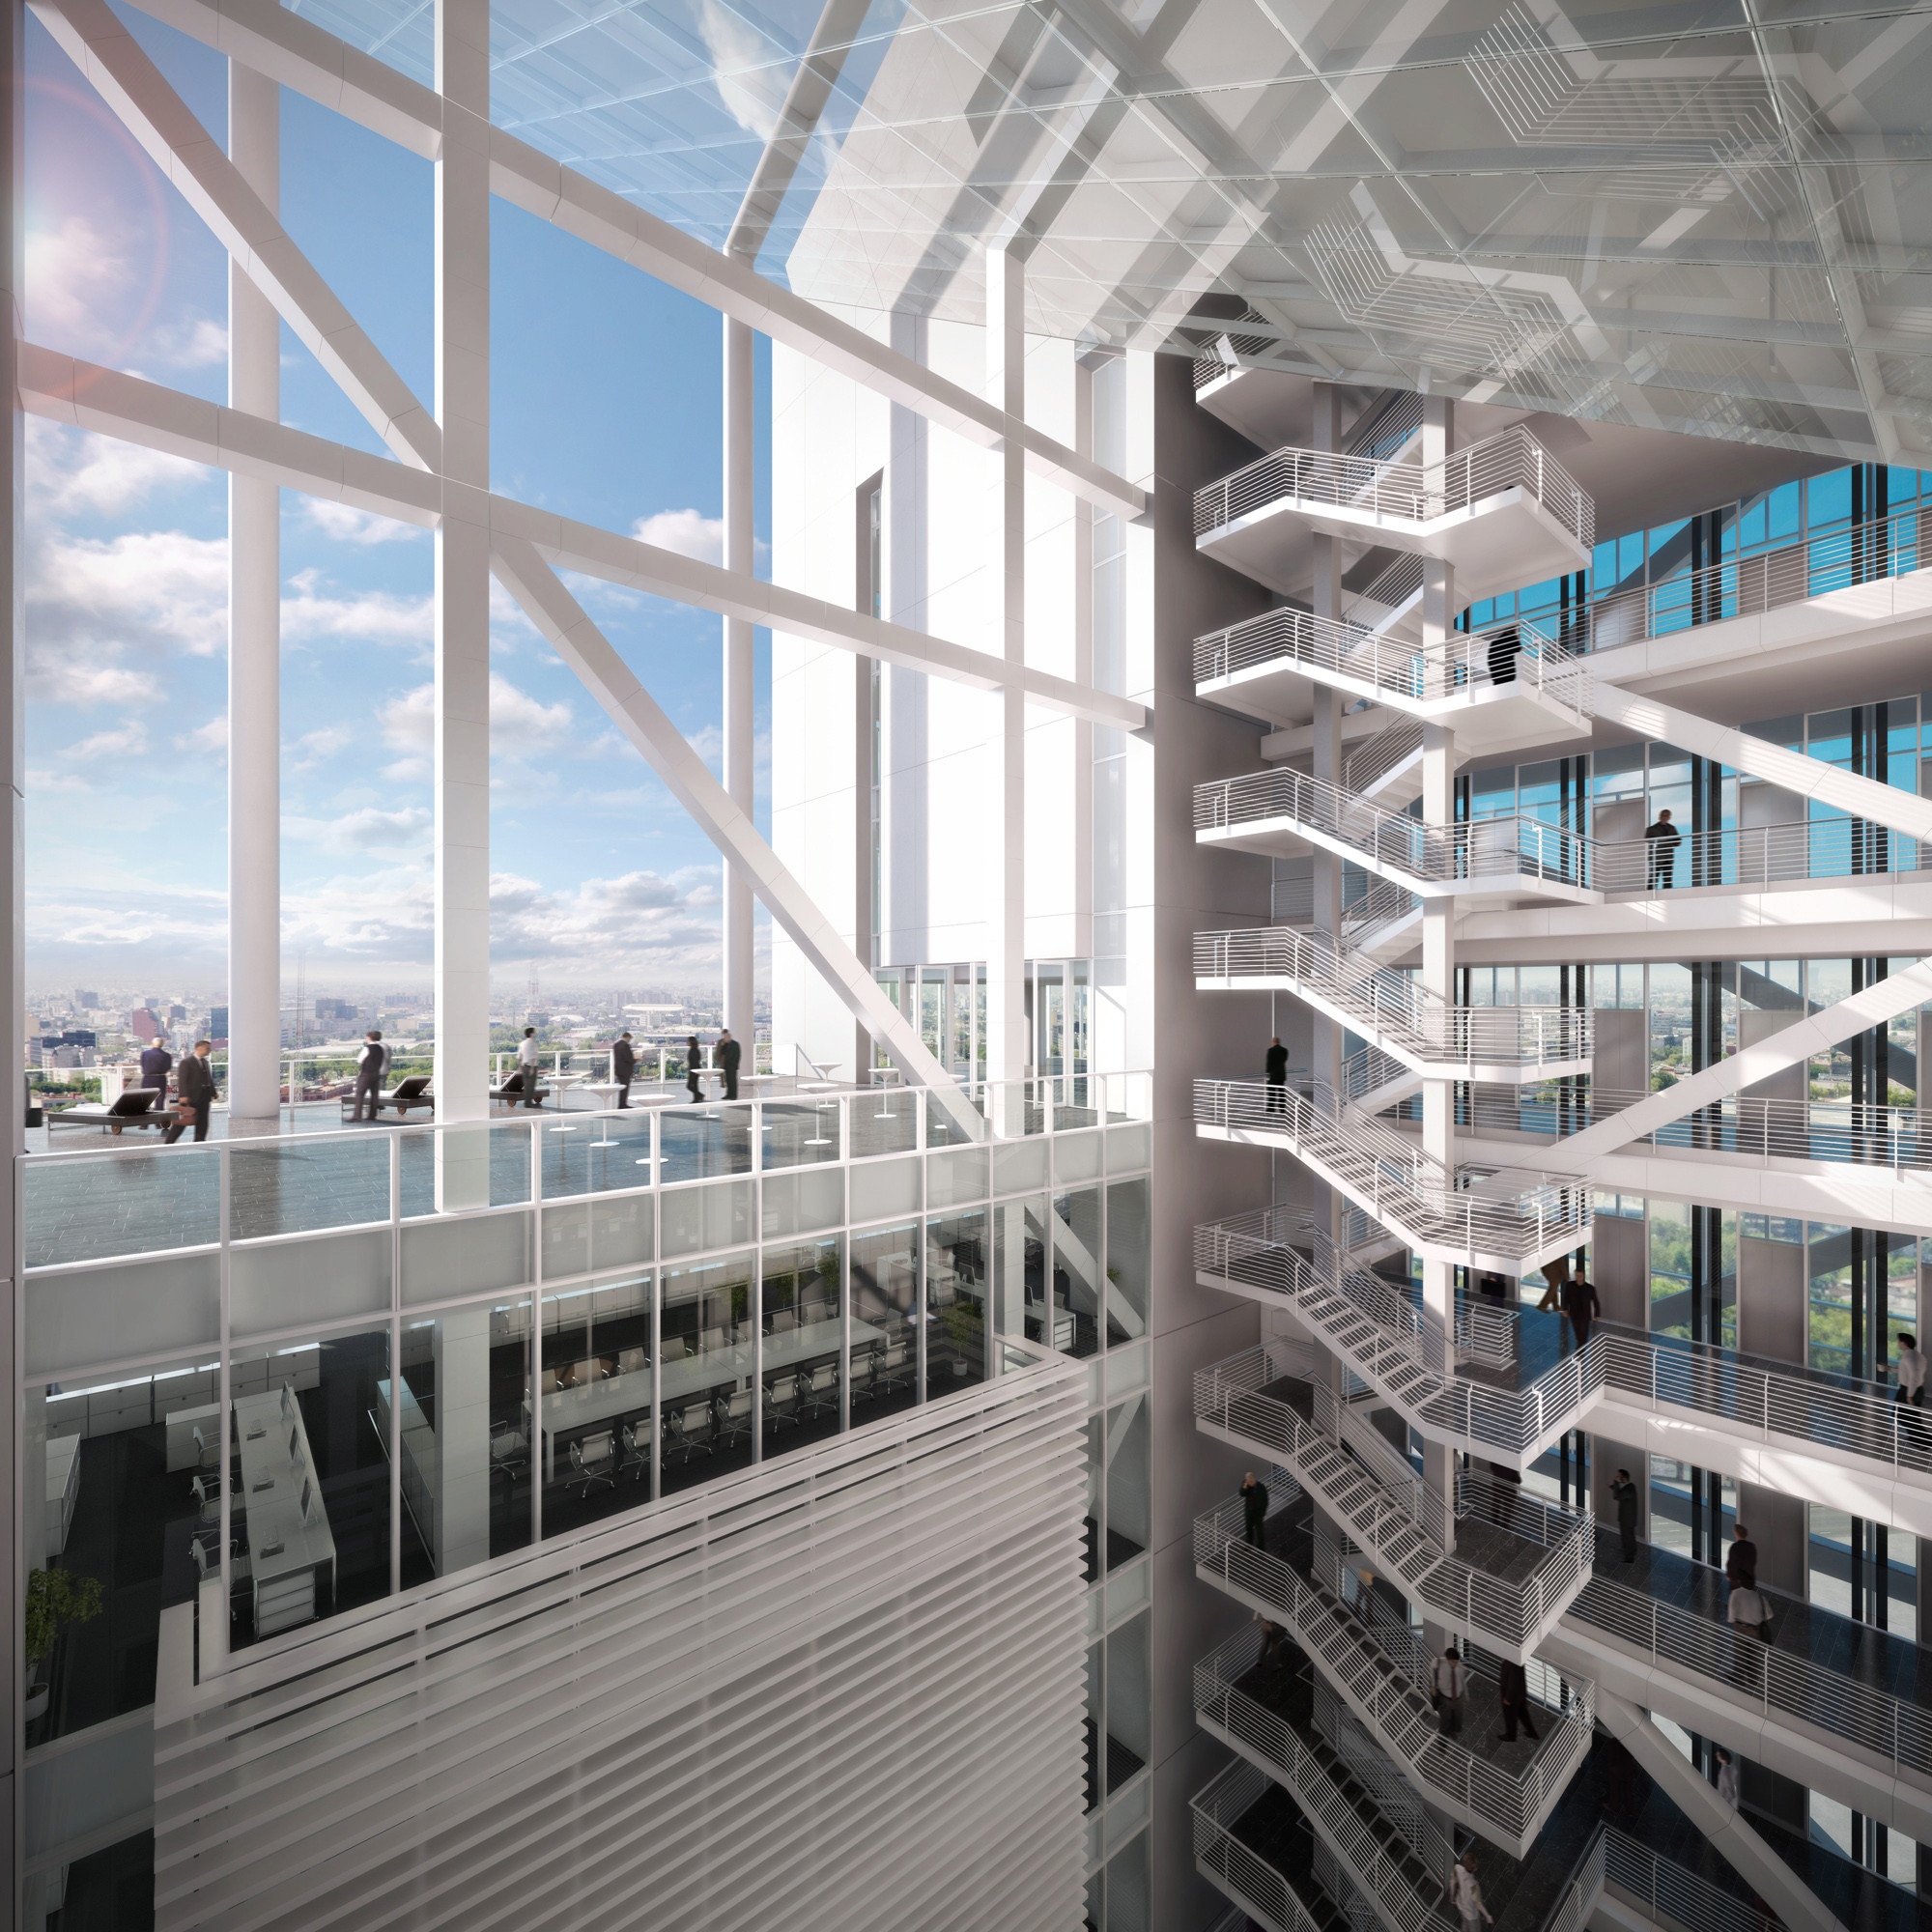 Richard meier unveils 180 meter tower development in mexico office atrium and central void image courtesy of richard meier partners sciox Images